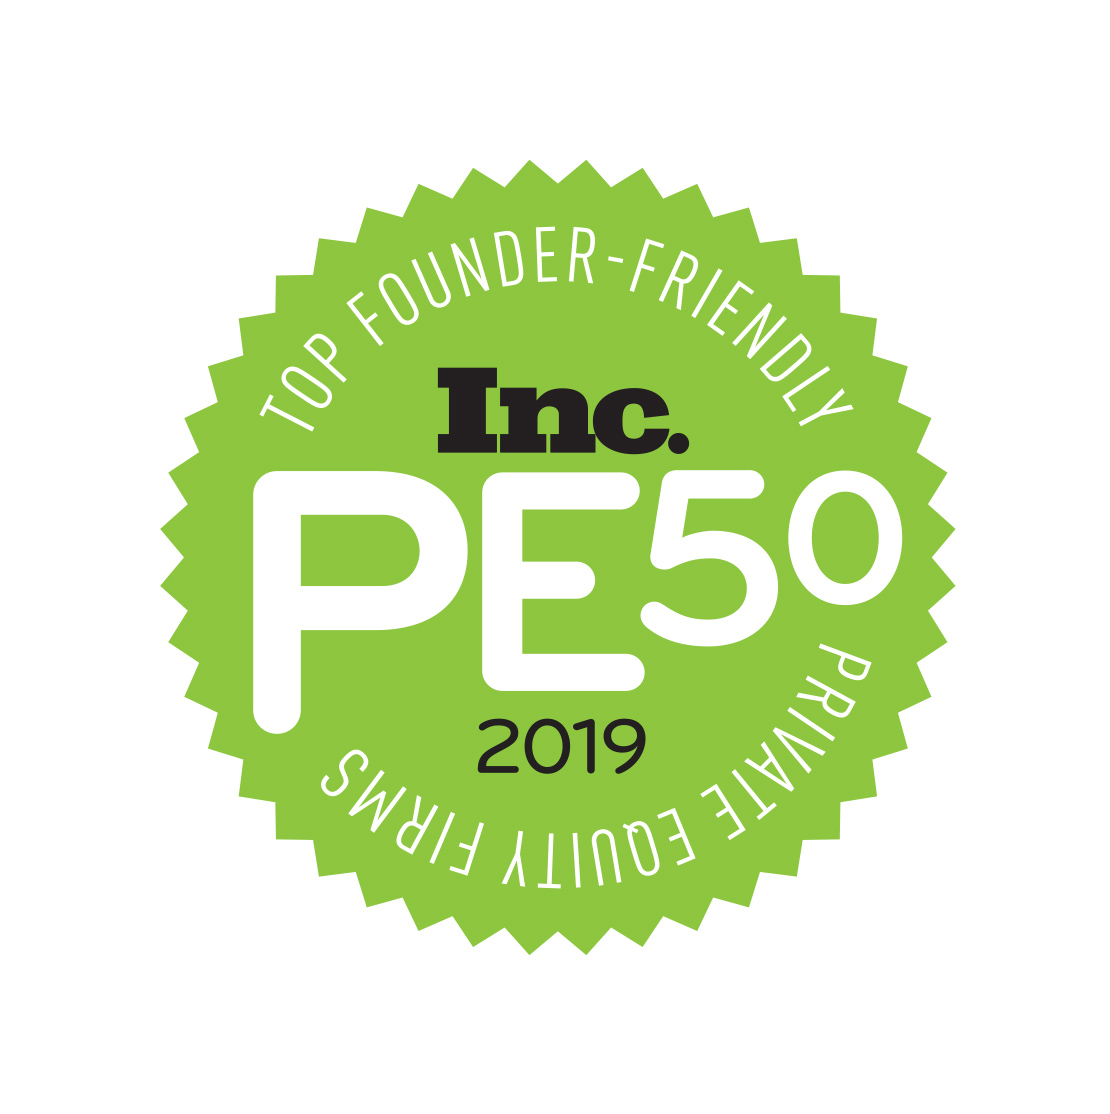 Quad-C named to Inc.'s List of Top 50 Private Equity Firms for Entrepreneurs